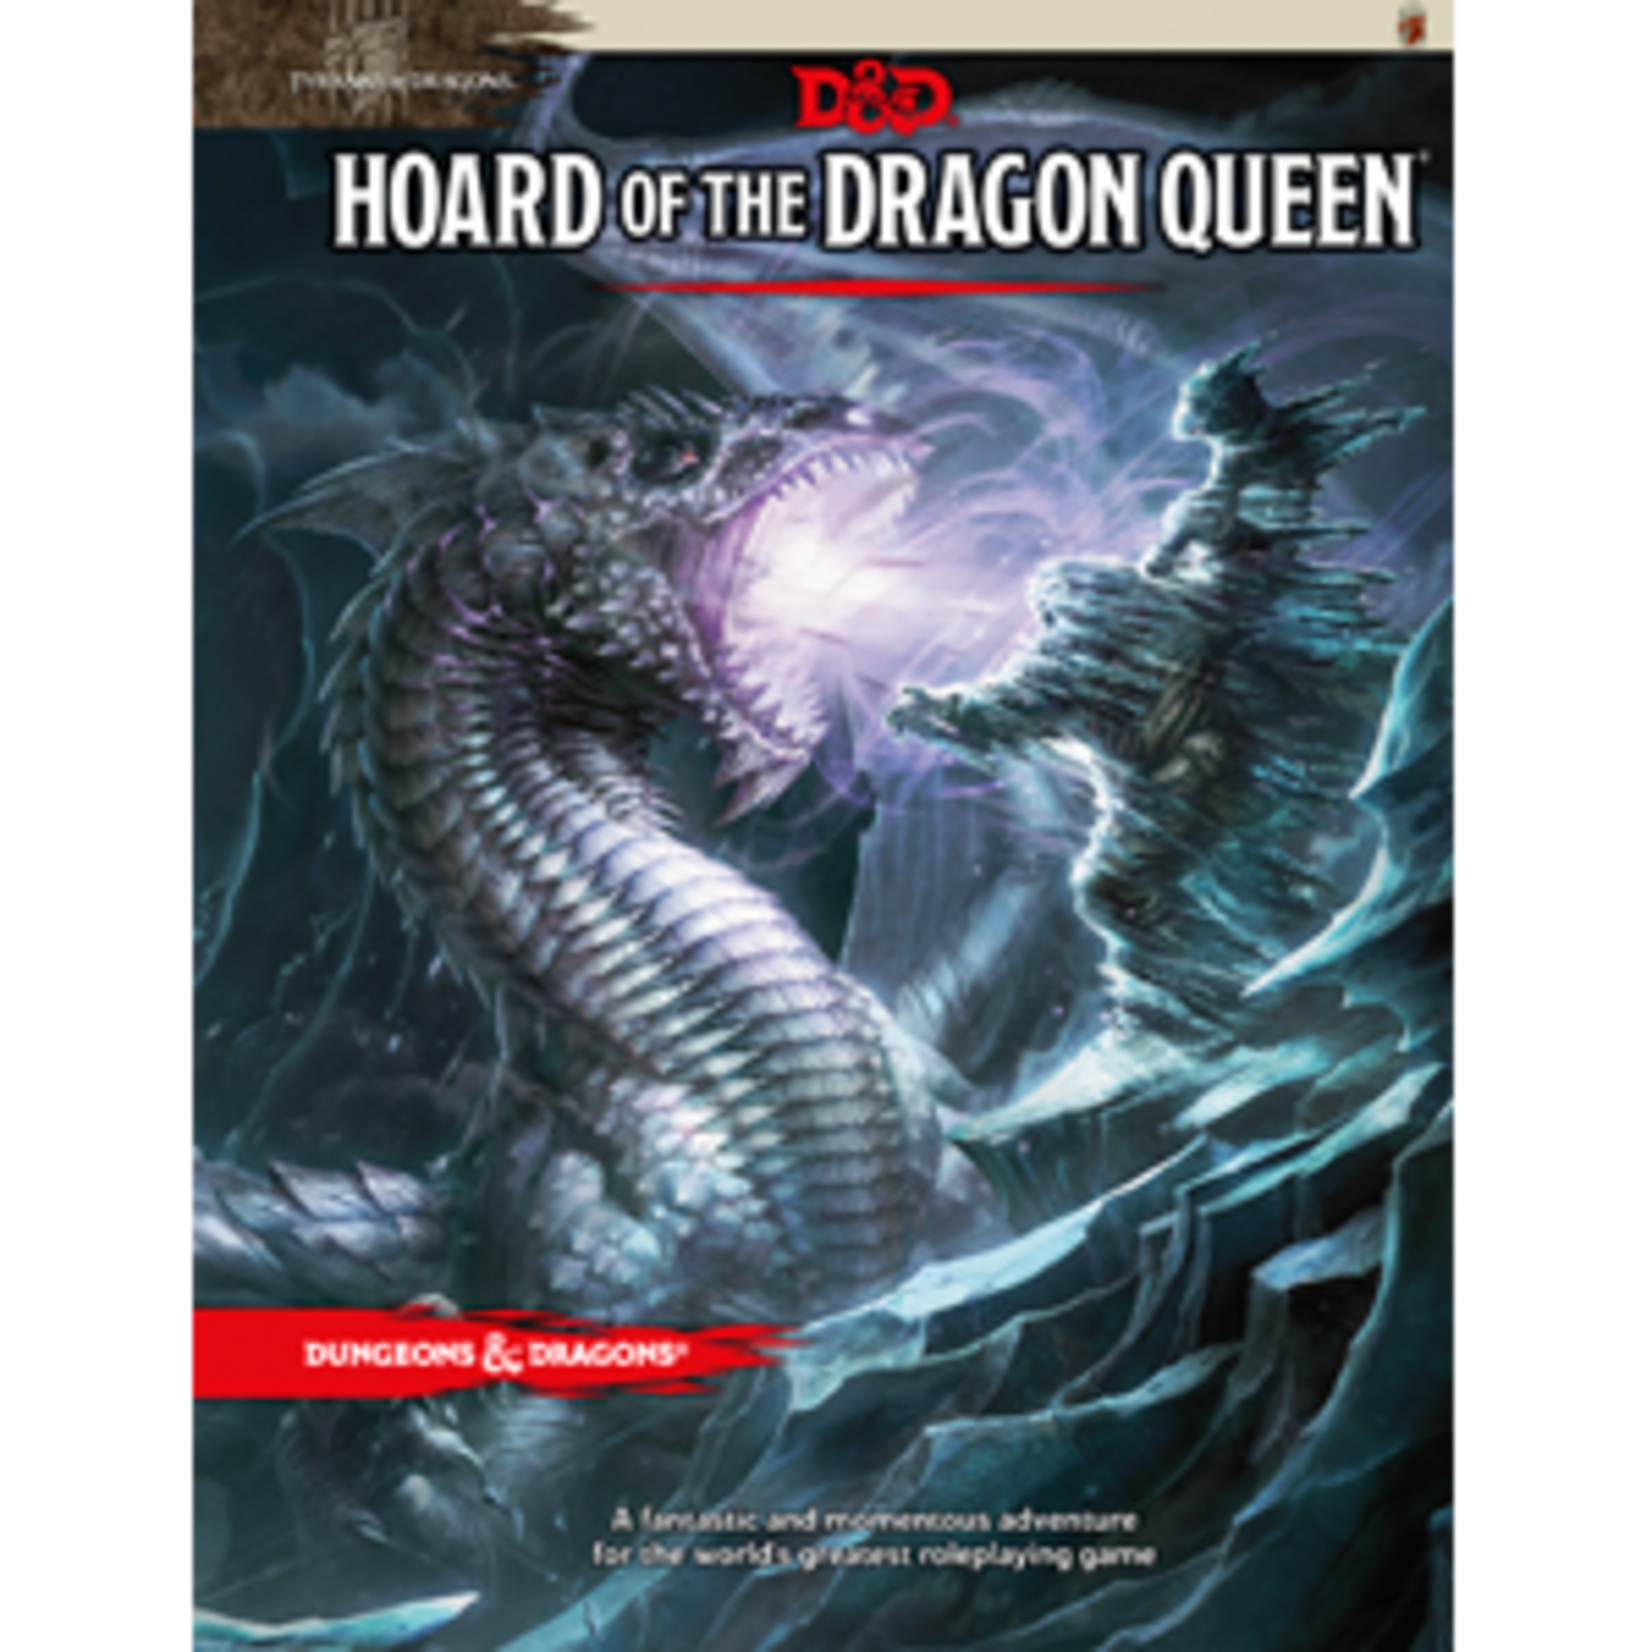 Dungeons & Dragons Dungeons & Dragons 5th Edition: Hoard of the Dragon Queen